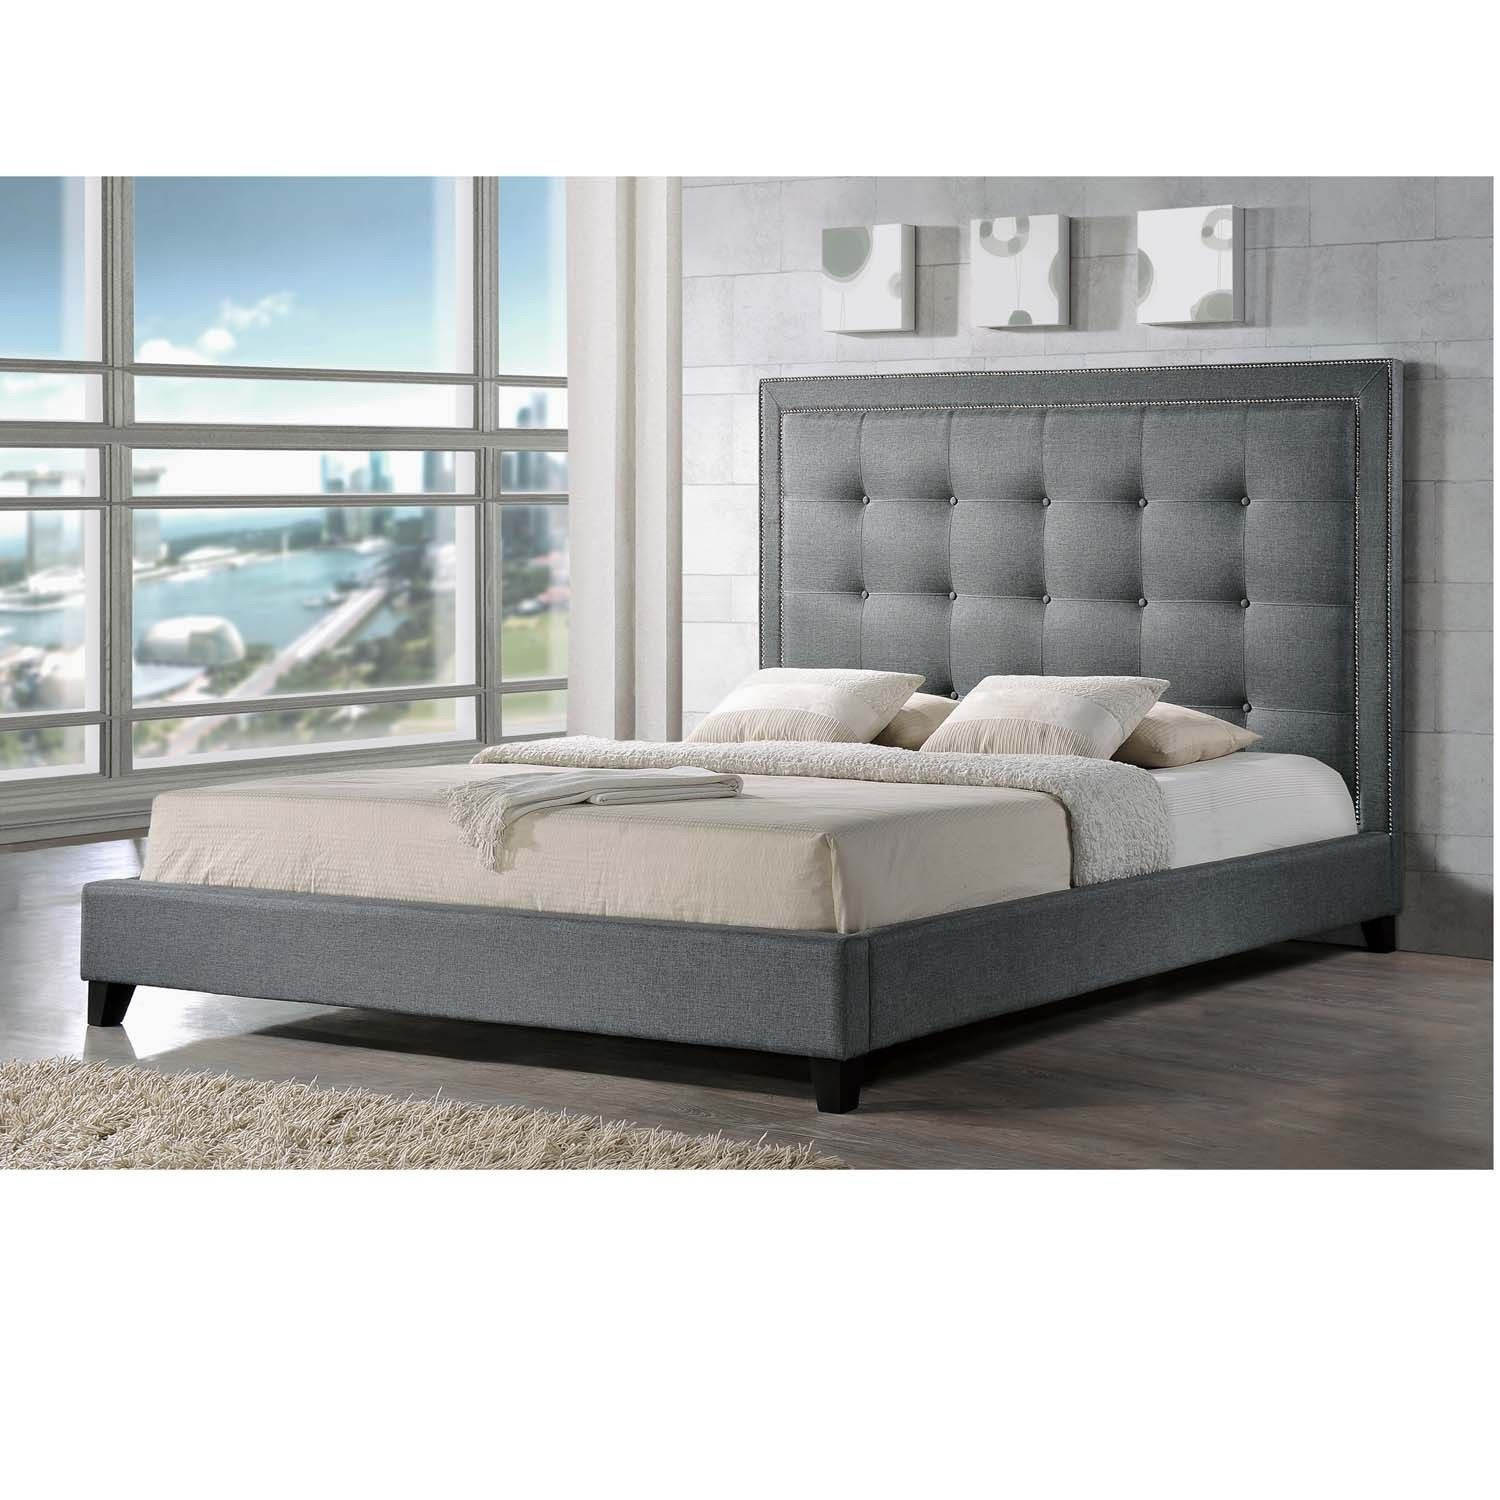 Baxton Studio Hirst Grey Linen Bed With Upholstered Headboard Queen